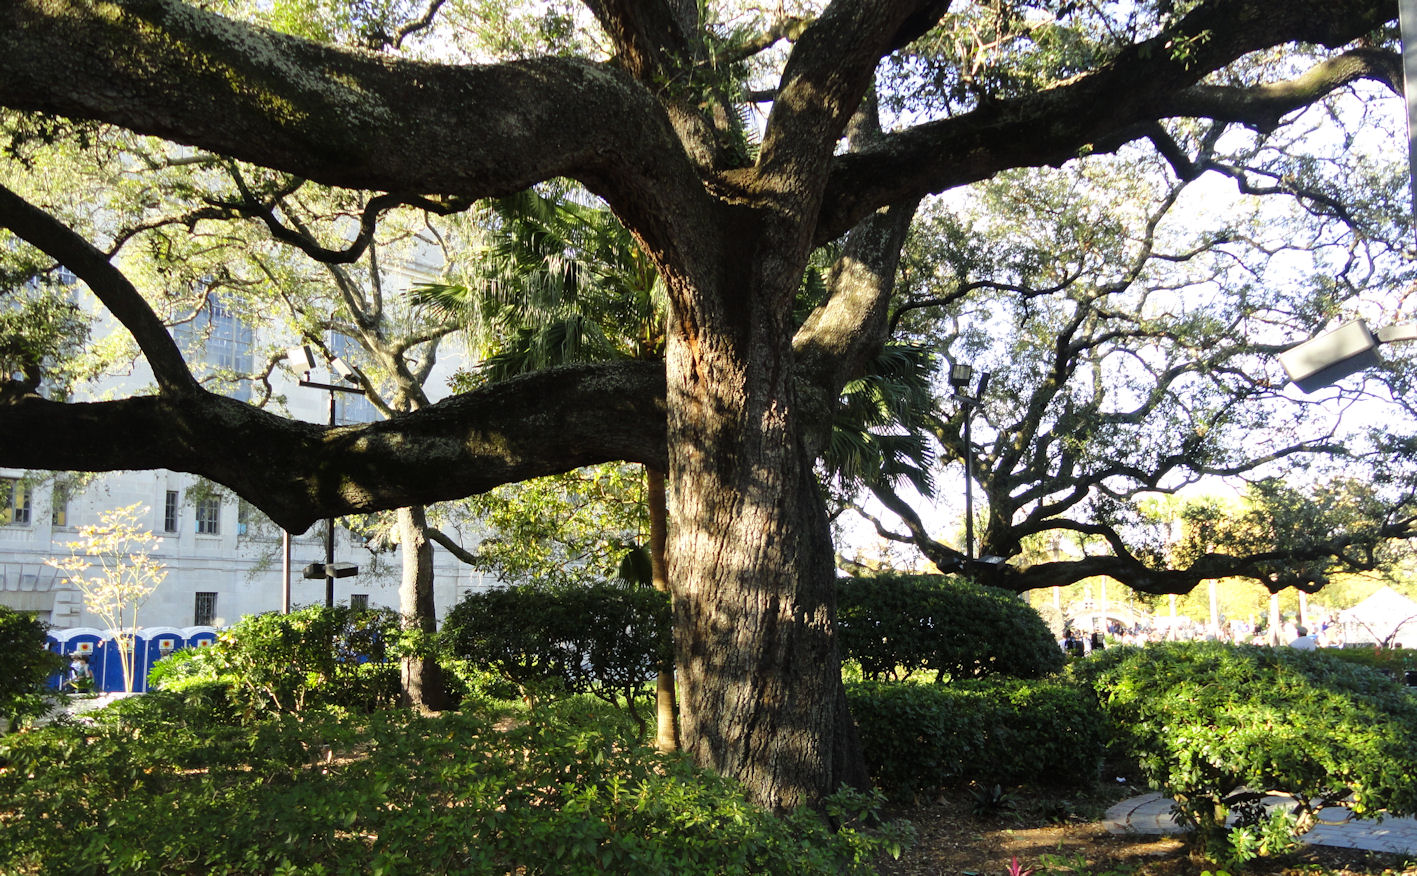 Big live oak tree in New Orleans